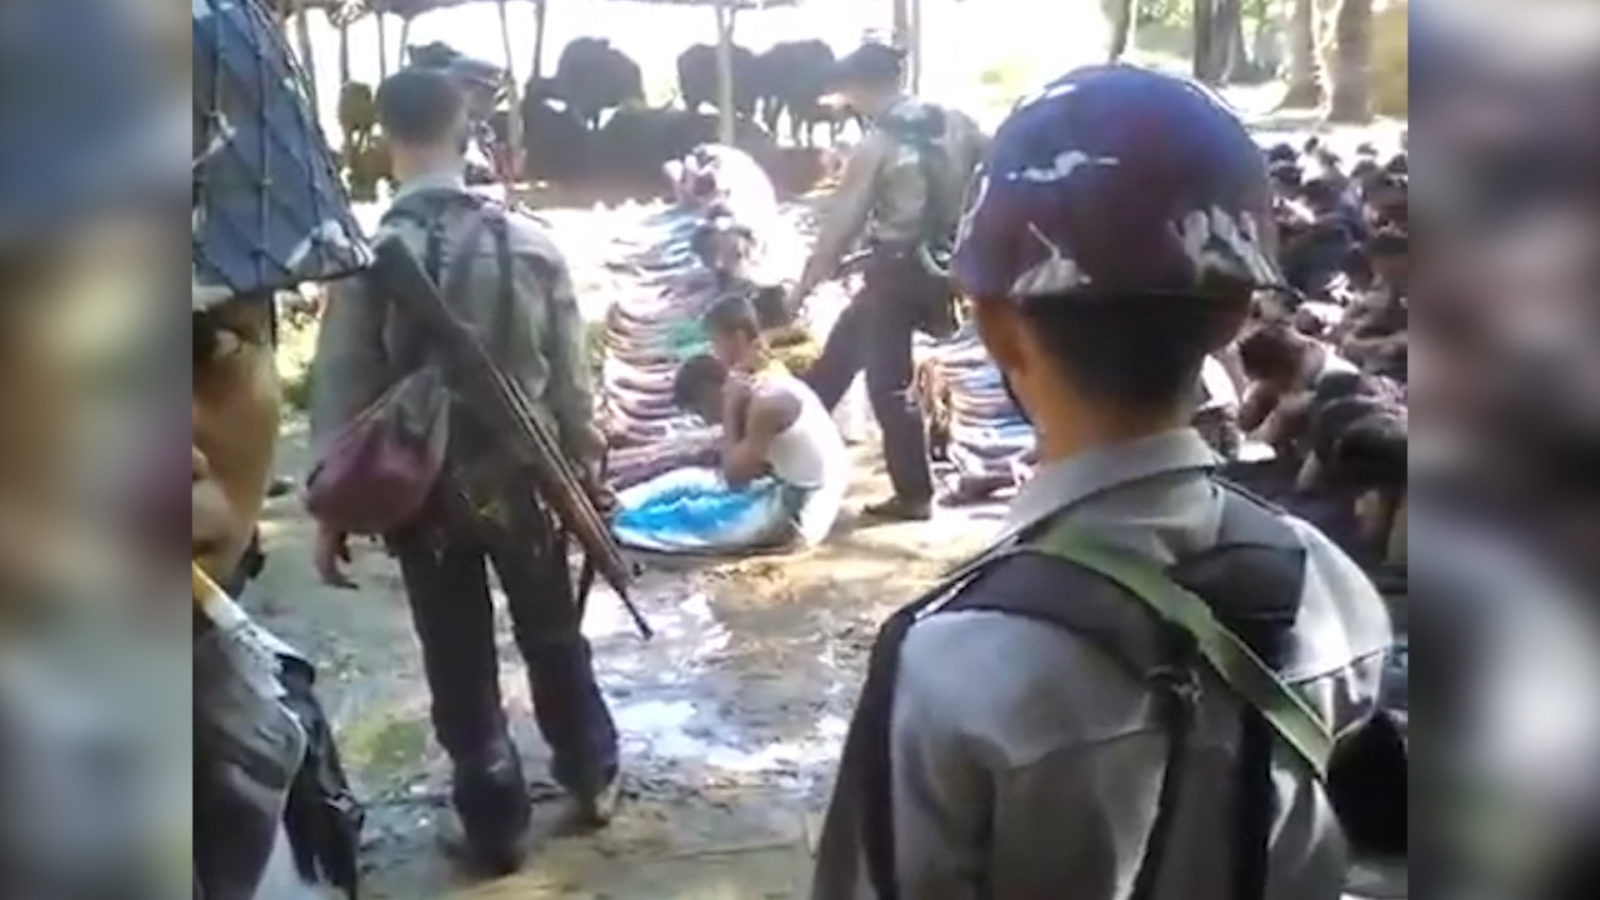 Rohingya civilians being abused by police in Kotankauk Village, Maungdaw